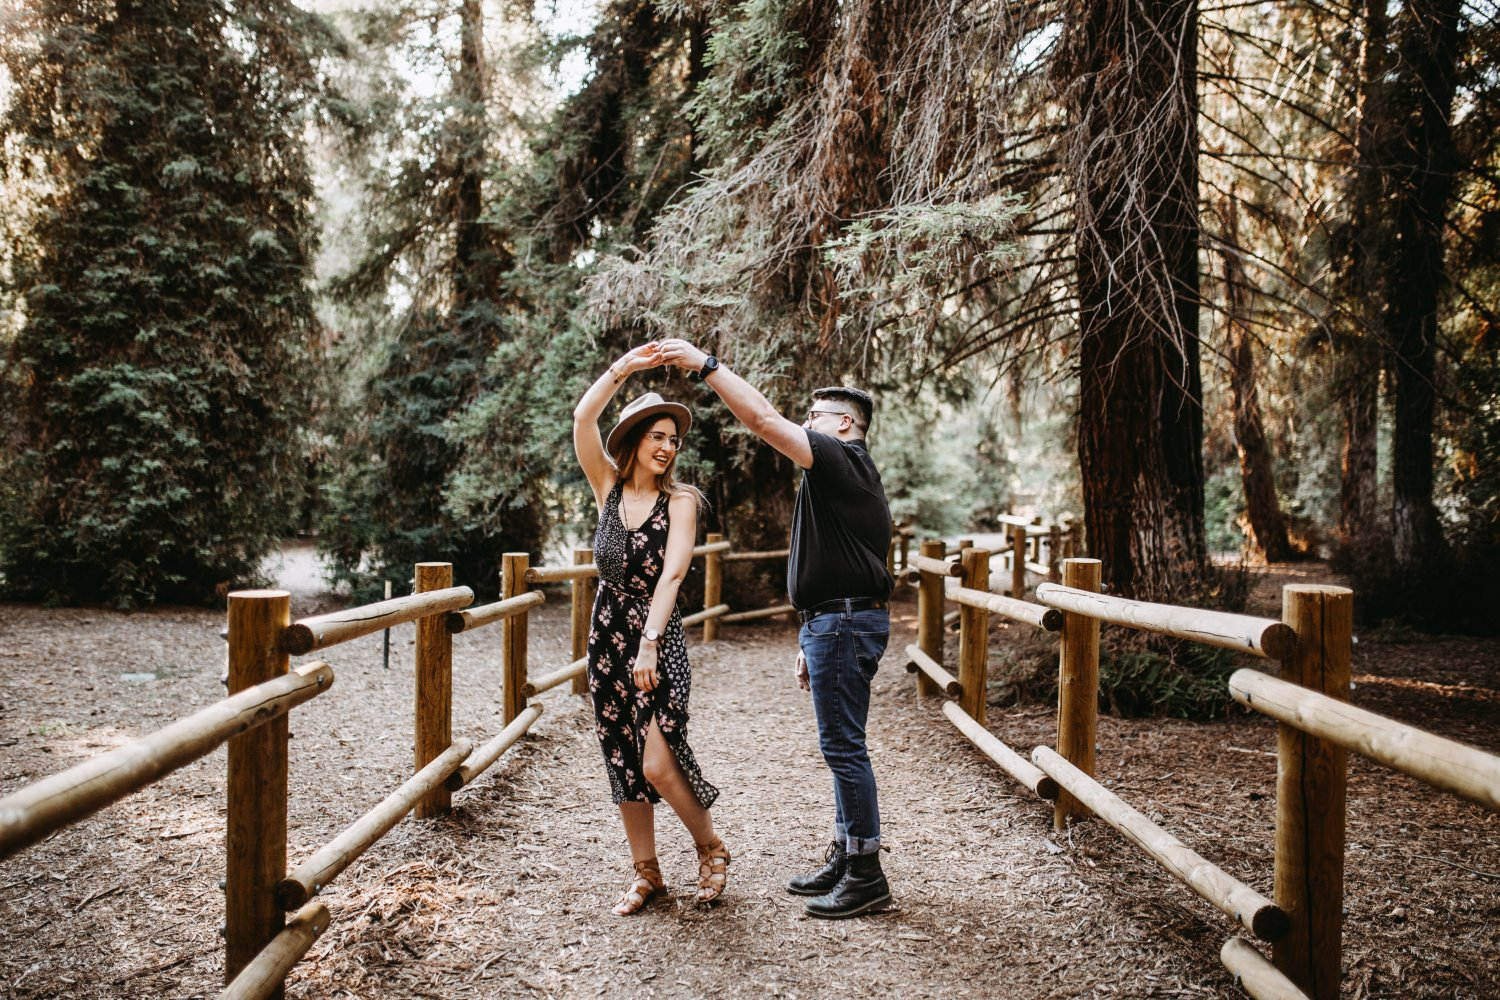 candid photography tips man and woman dancing